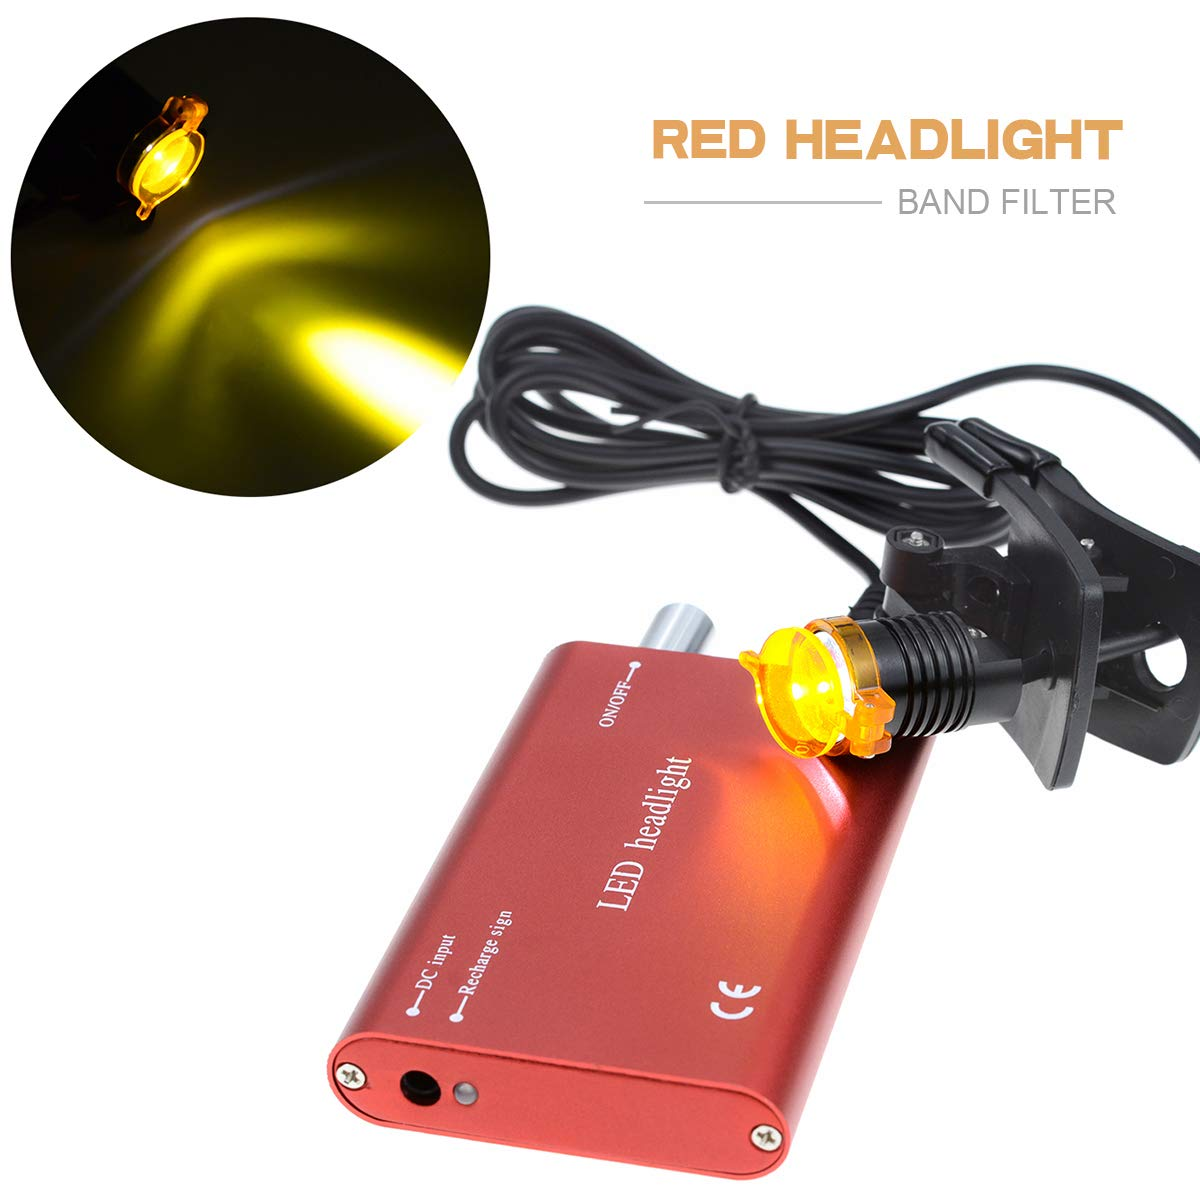 Headlamp for Dental Surgical Medical Binocular Loupe with Bag Aries Outlets 3W Portable LED Dental Headlight With Plastic Clip Filter Head Light Red)